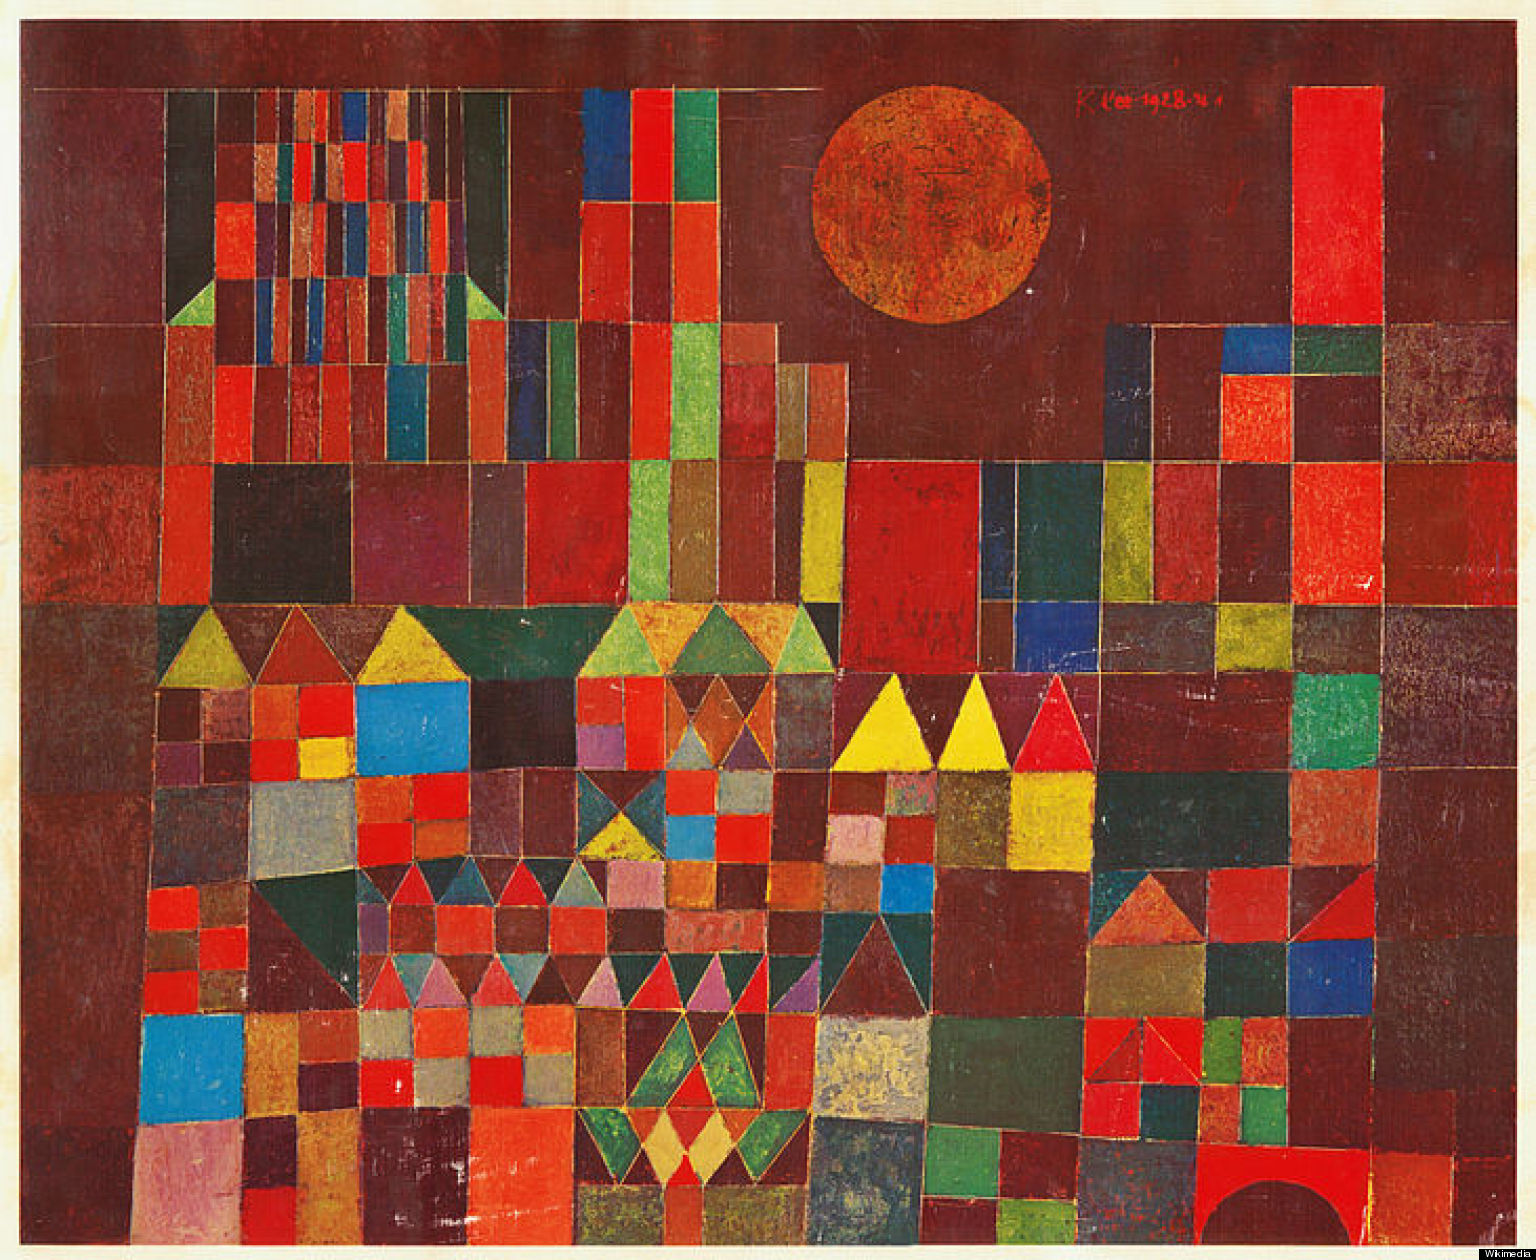 a biography of swiss born painter and graphic artist paul klee Paul klee biography paul klee (1879-1940) german-swiss painter, born in berne undecided at first whether to pursue art or music, he eventually went to munich to study and joined the blaue reiter group (kandinsky.